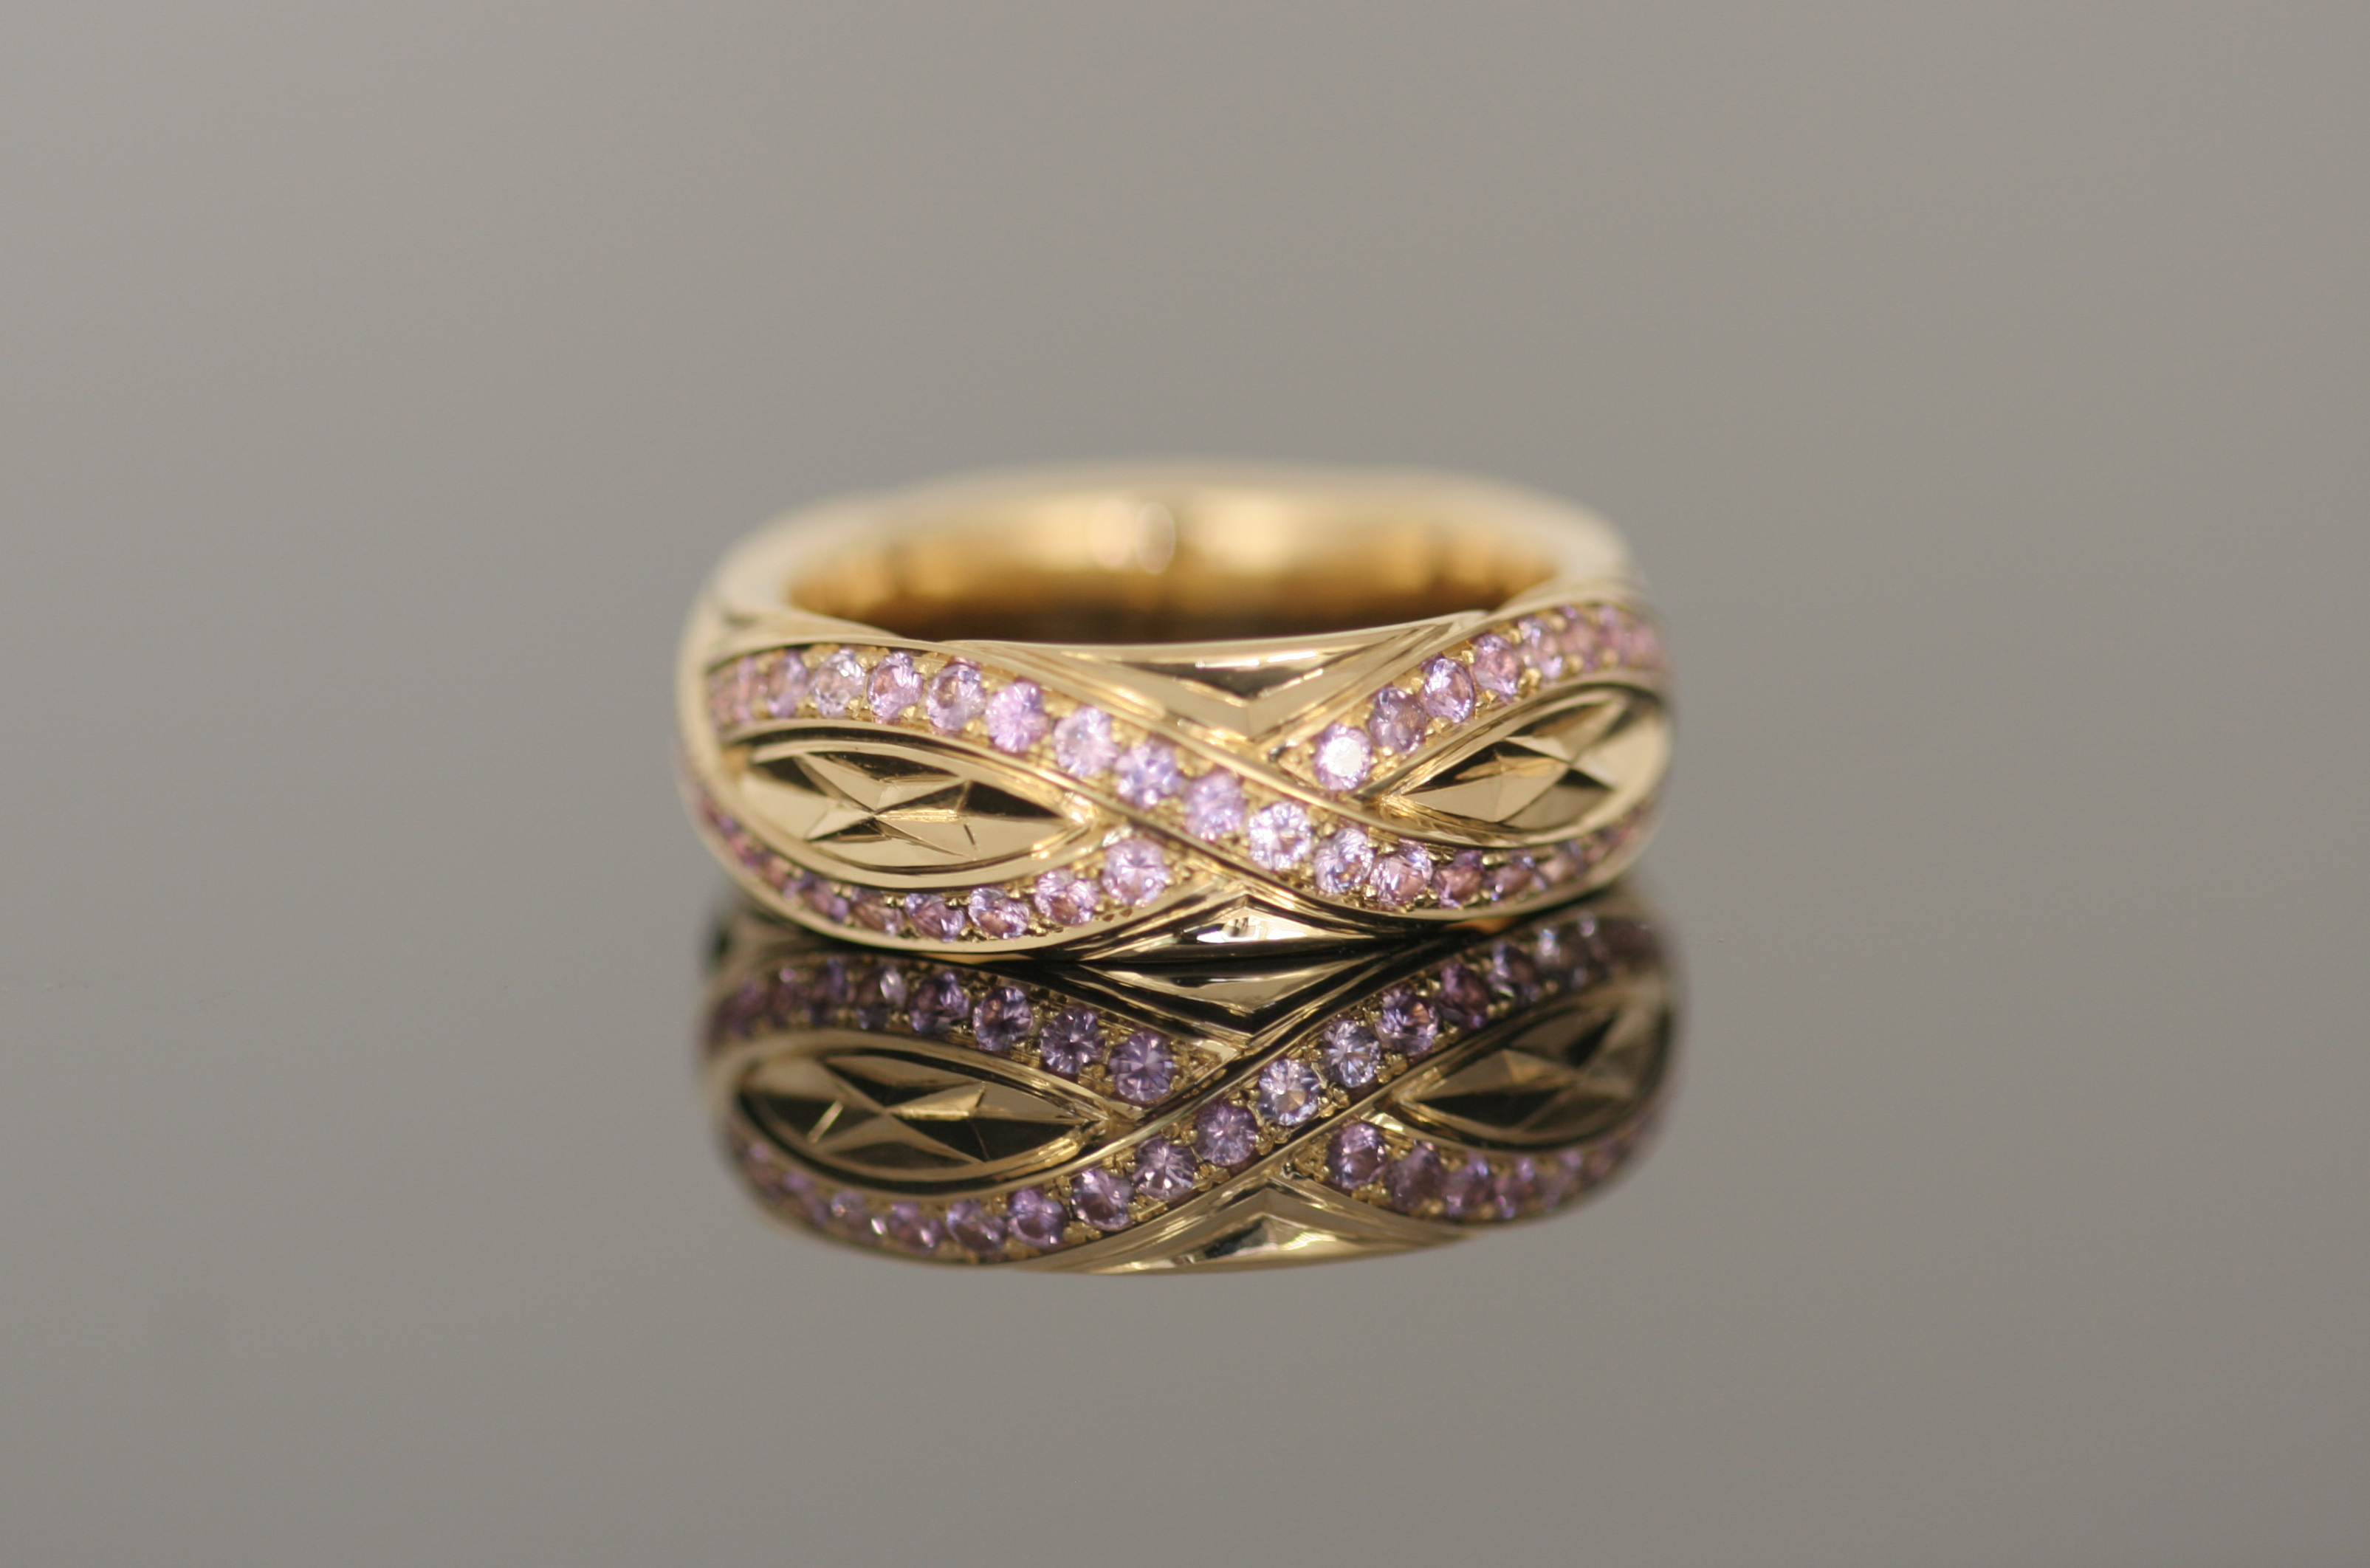 Ring, Rosegold, Saphire